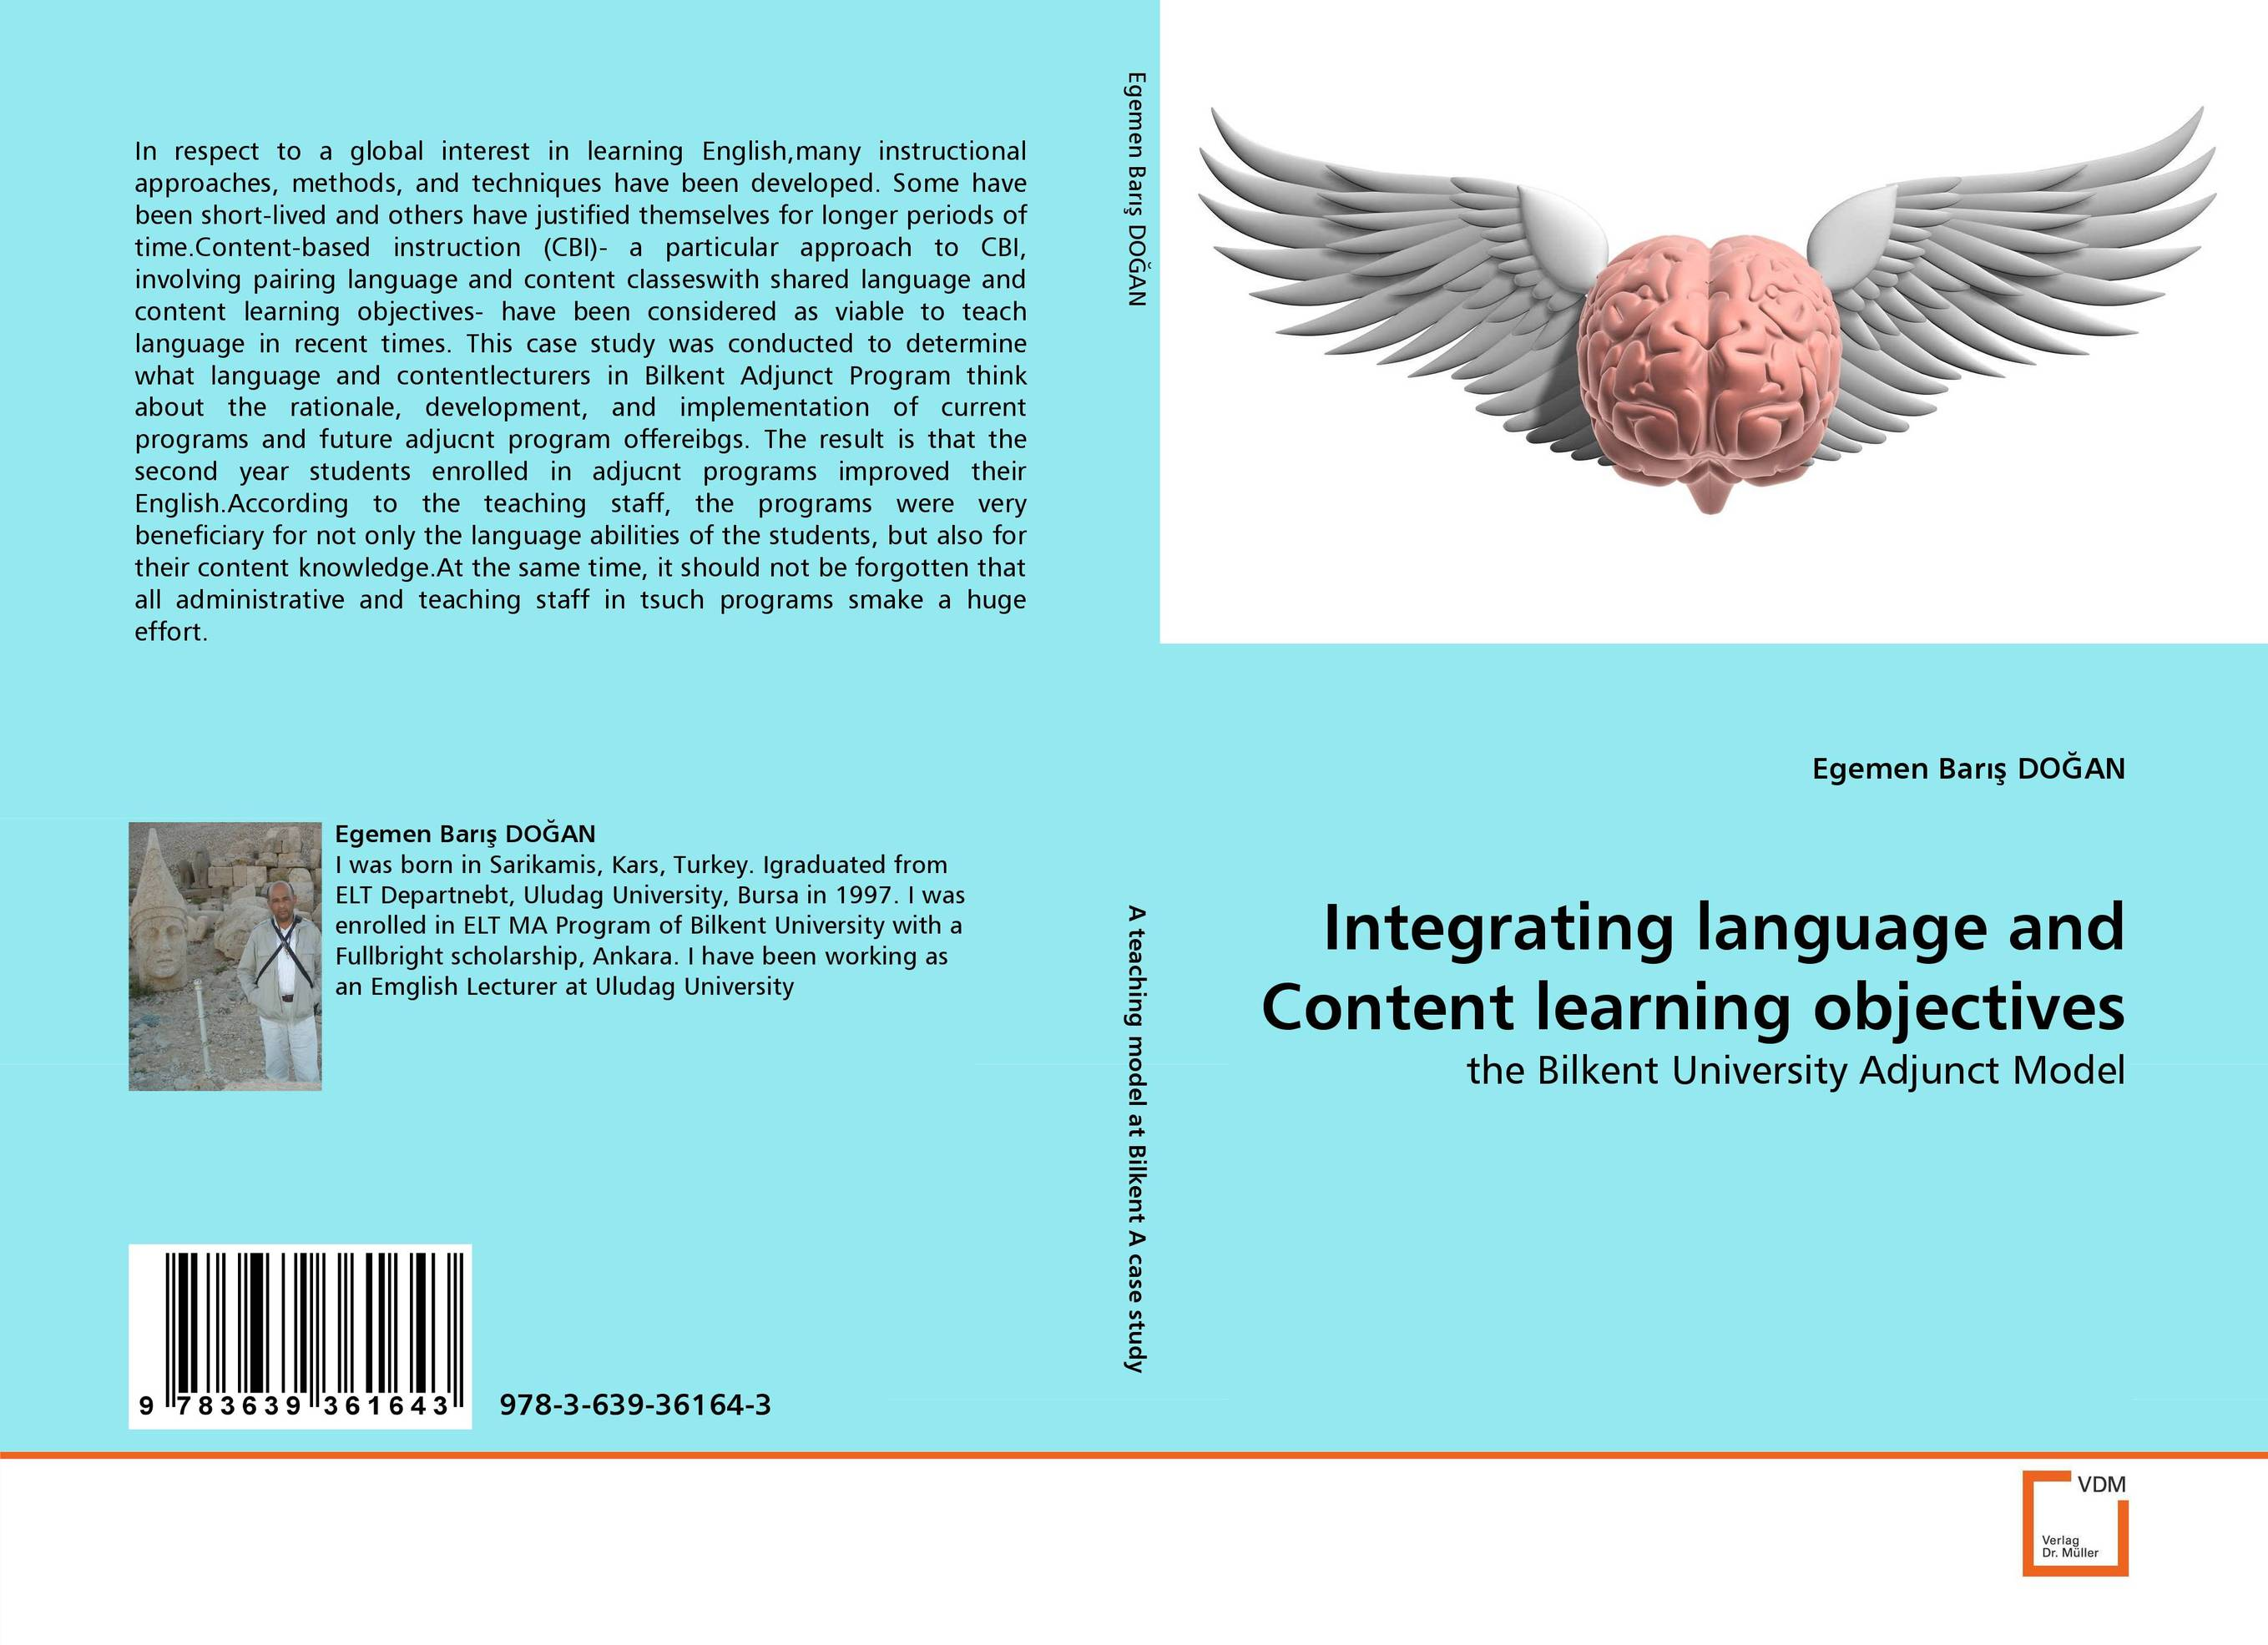 Integrating language and Content learning objectives abhishek kumar sah sunil k jain and manmohan singh jangdey a recent approaches in topical drug delivery system